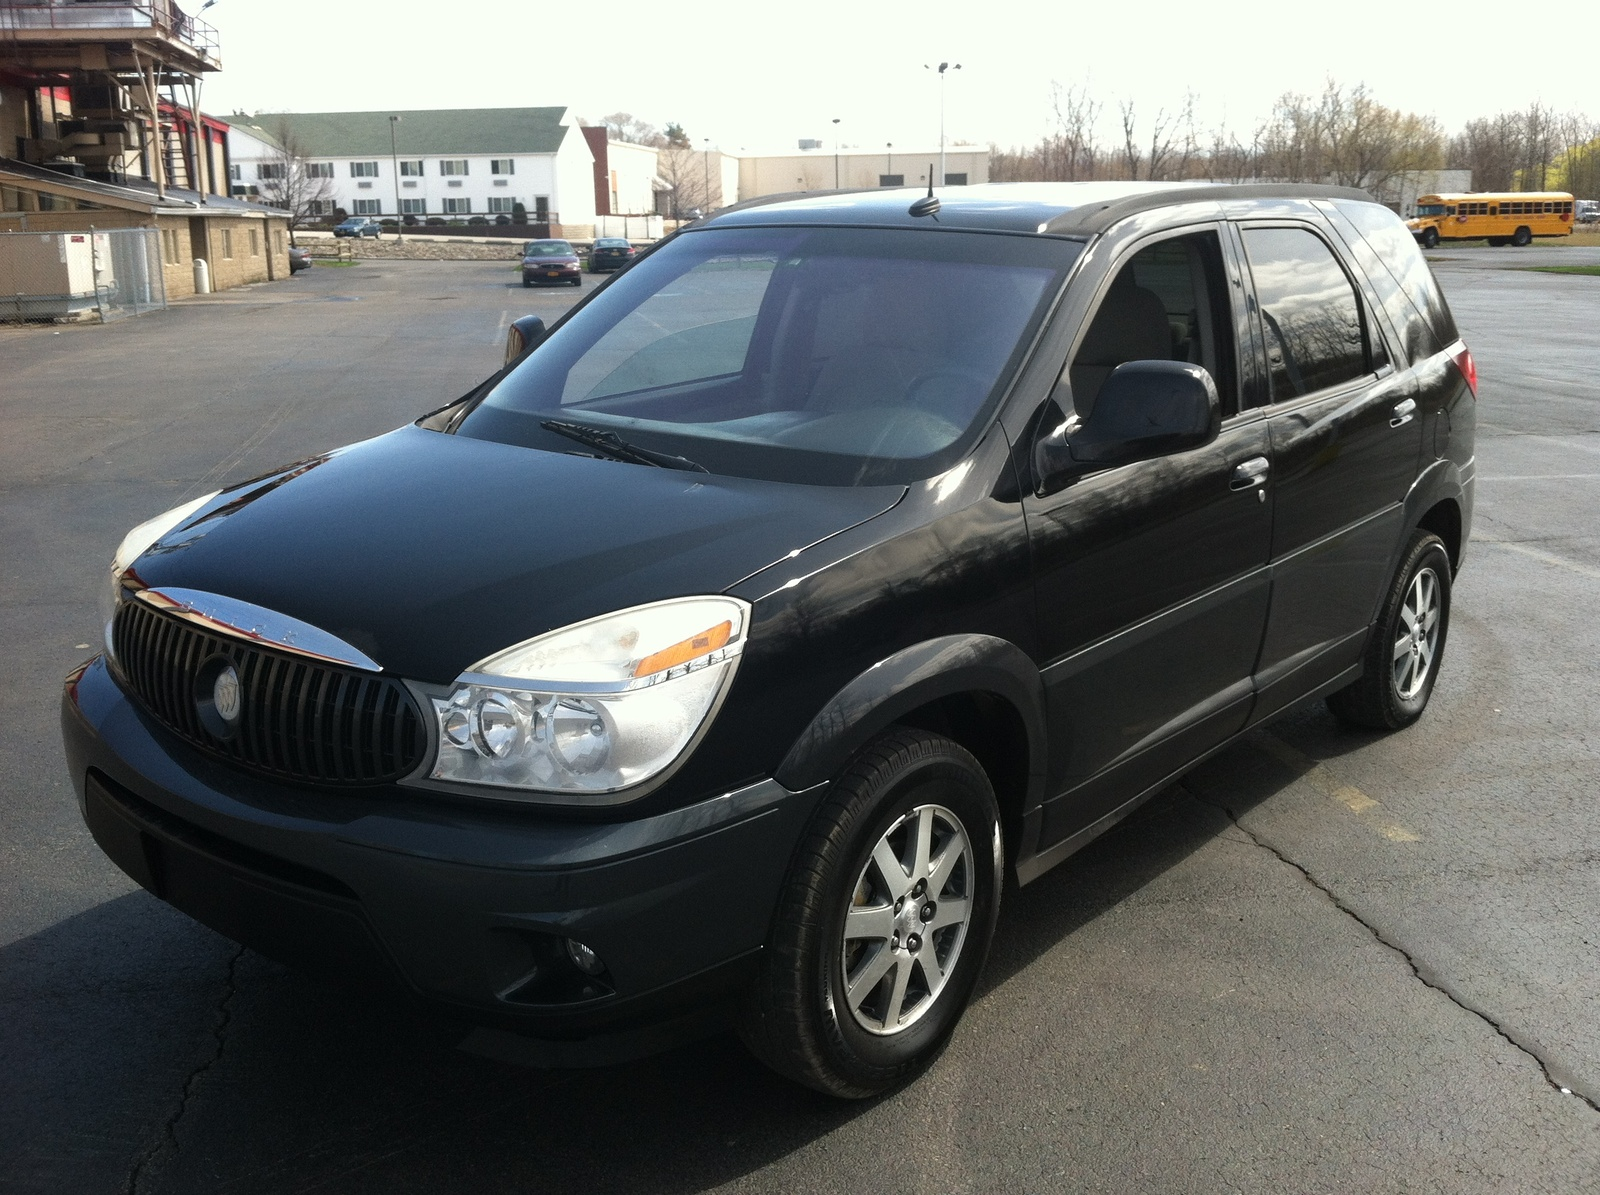 What s your take on the 2004 Buick Rendezvous